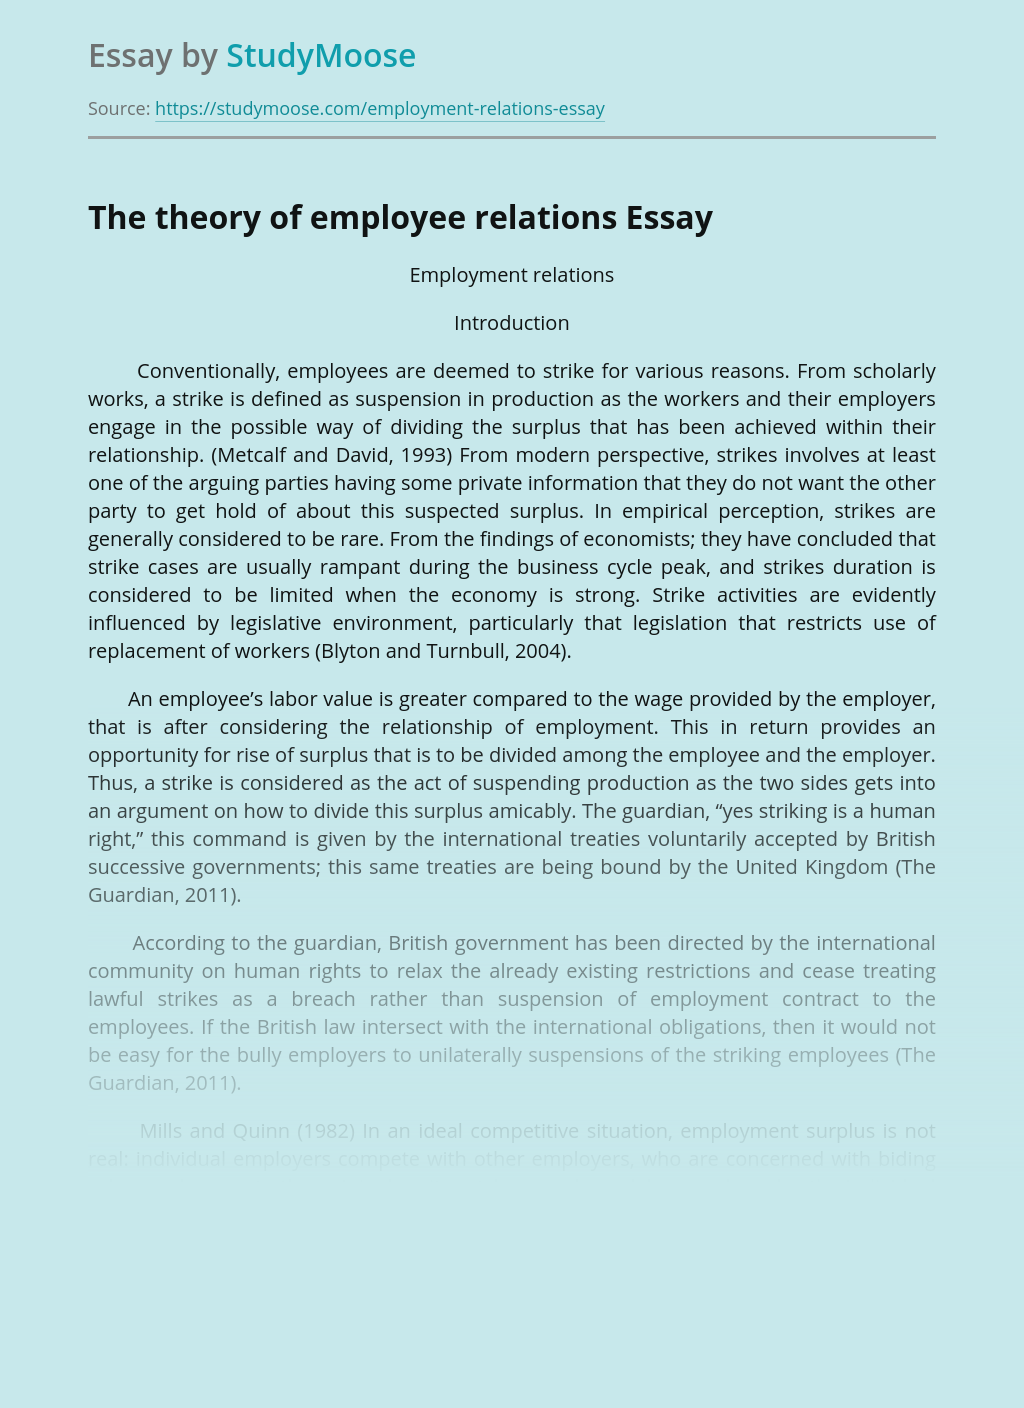 Theories on Employee Relations